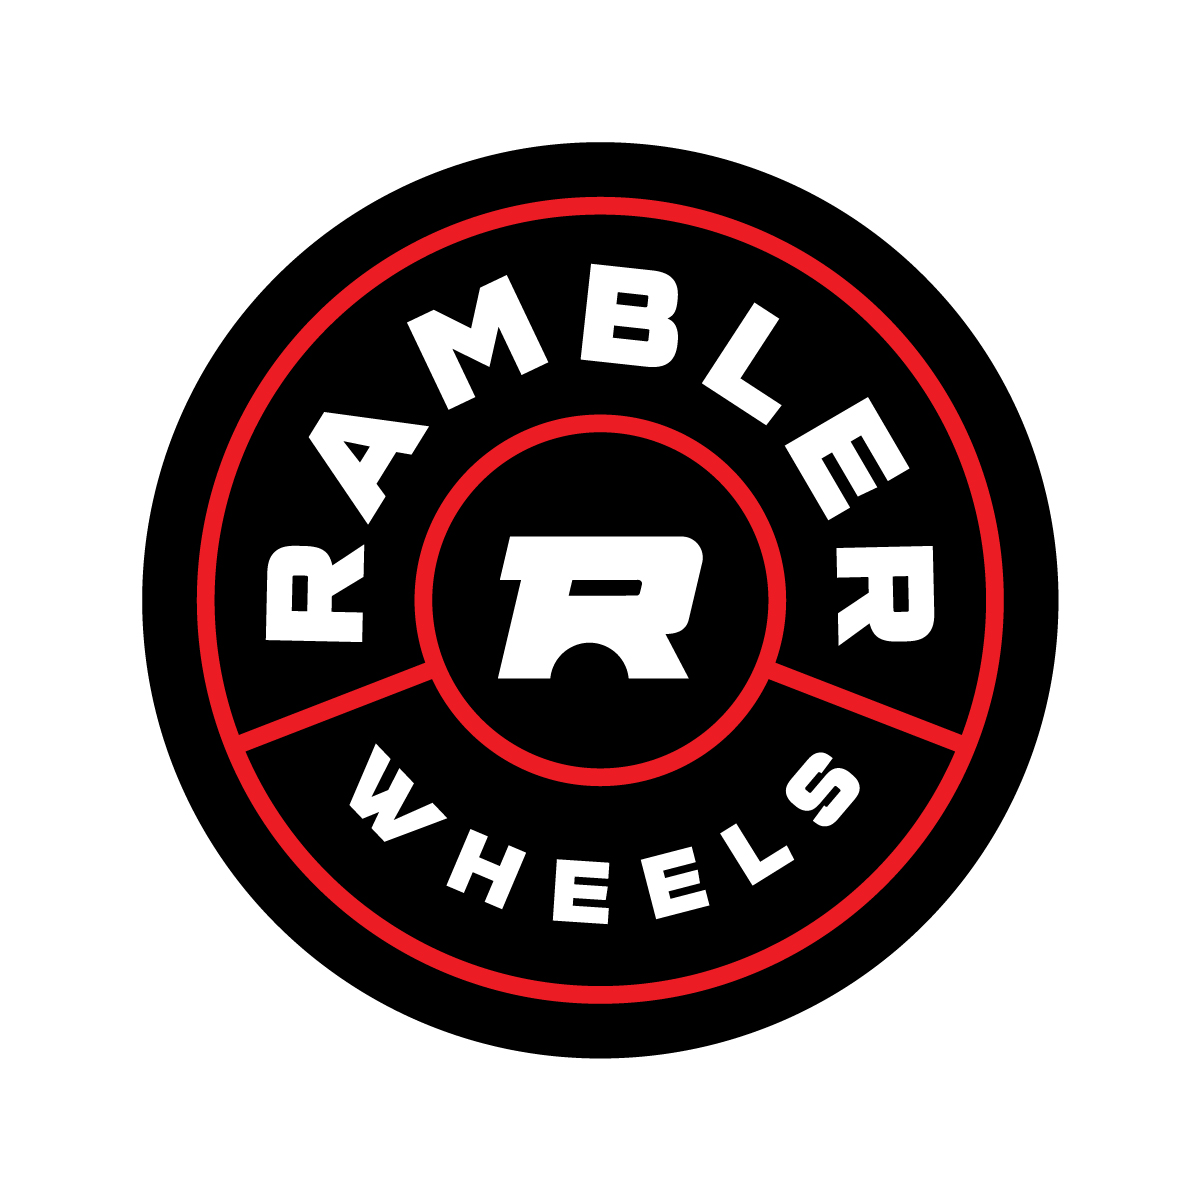 Rambler Wheels